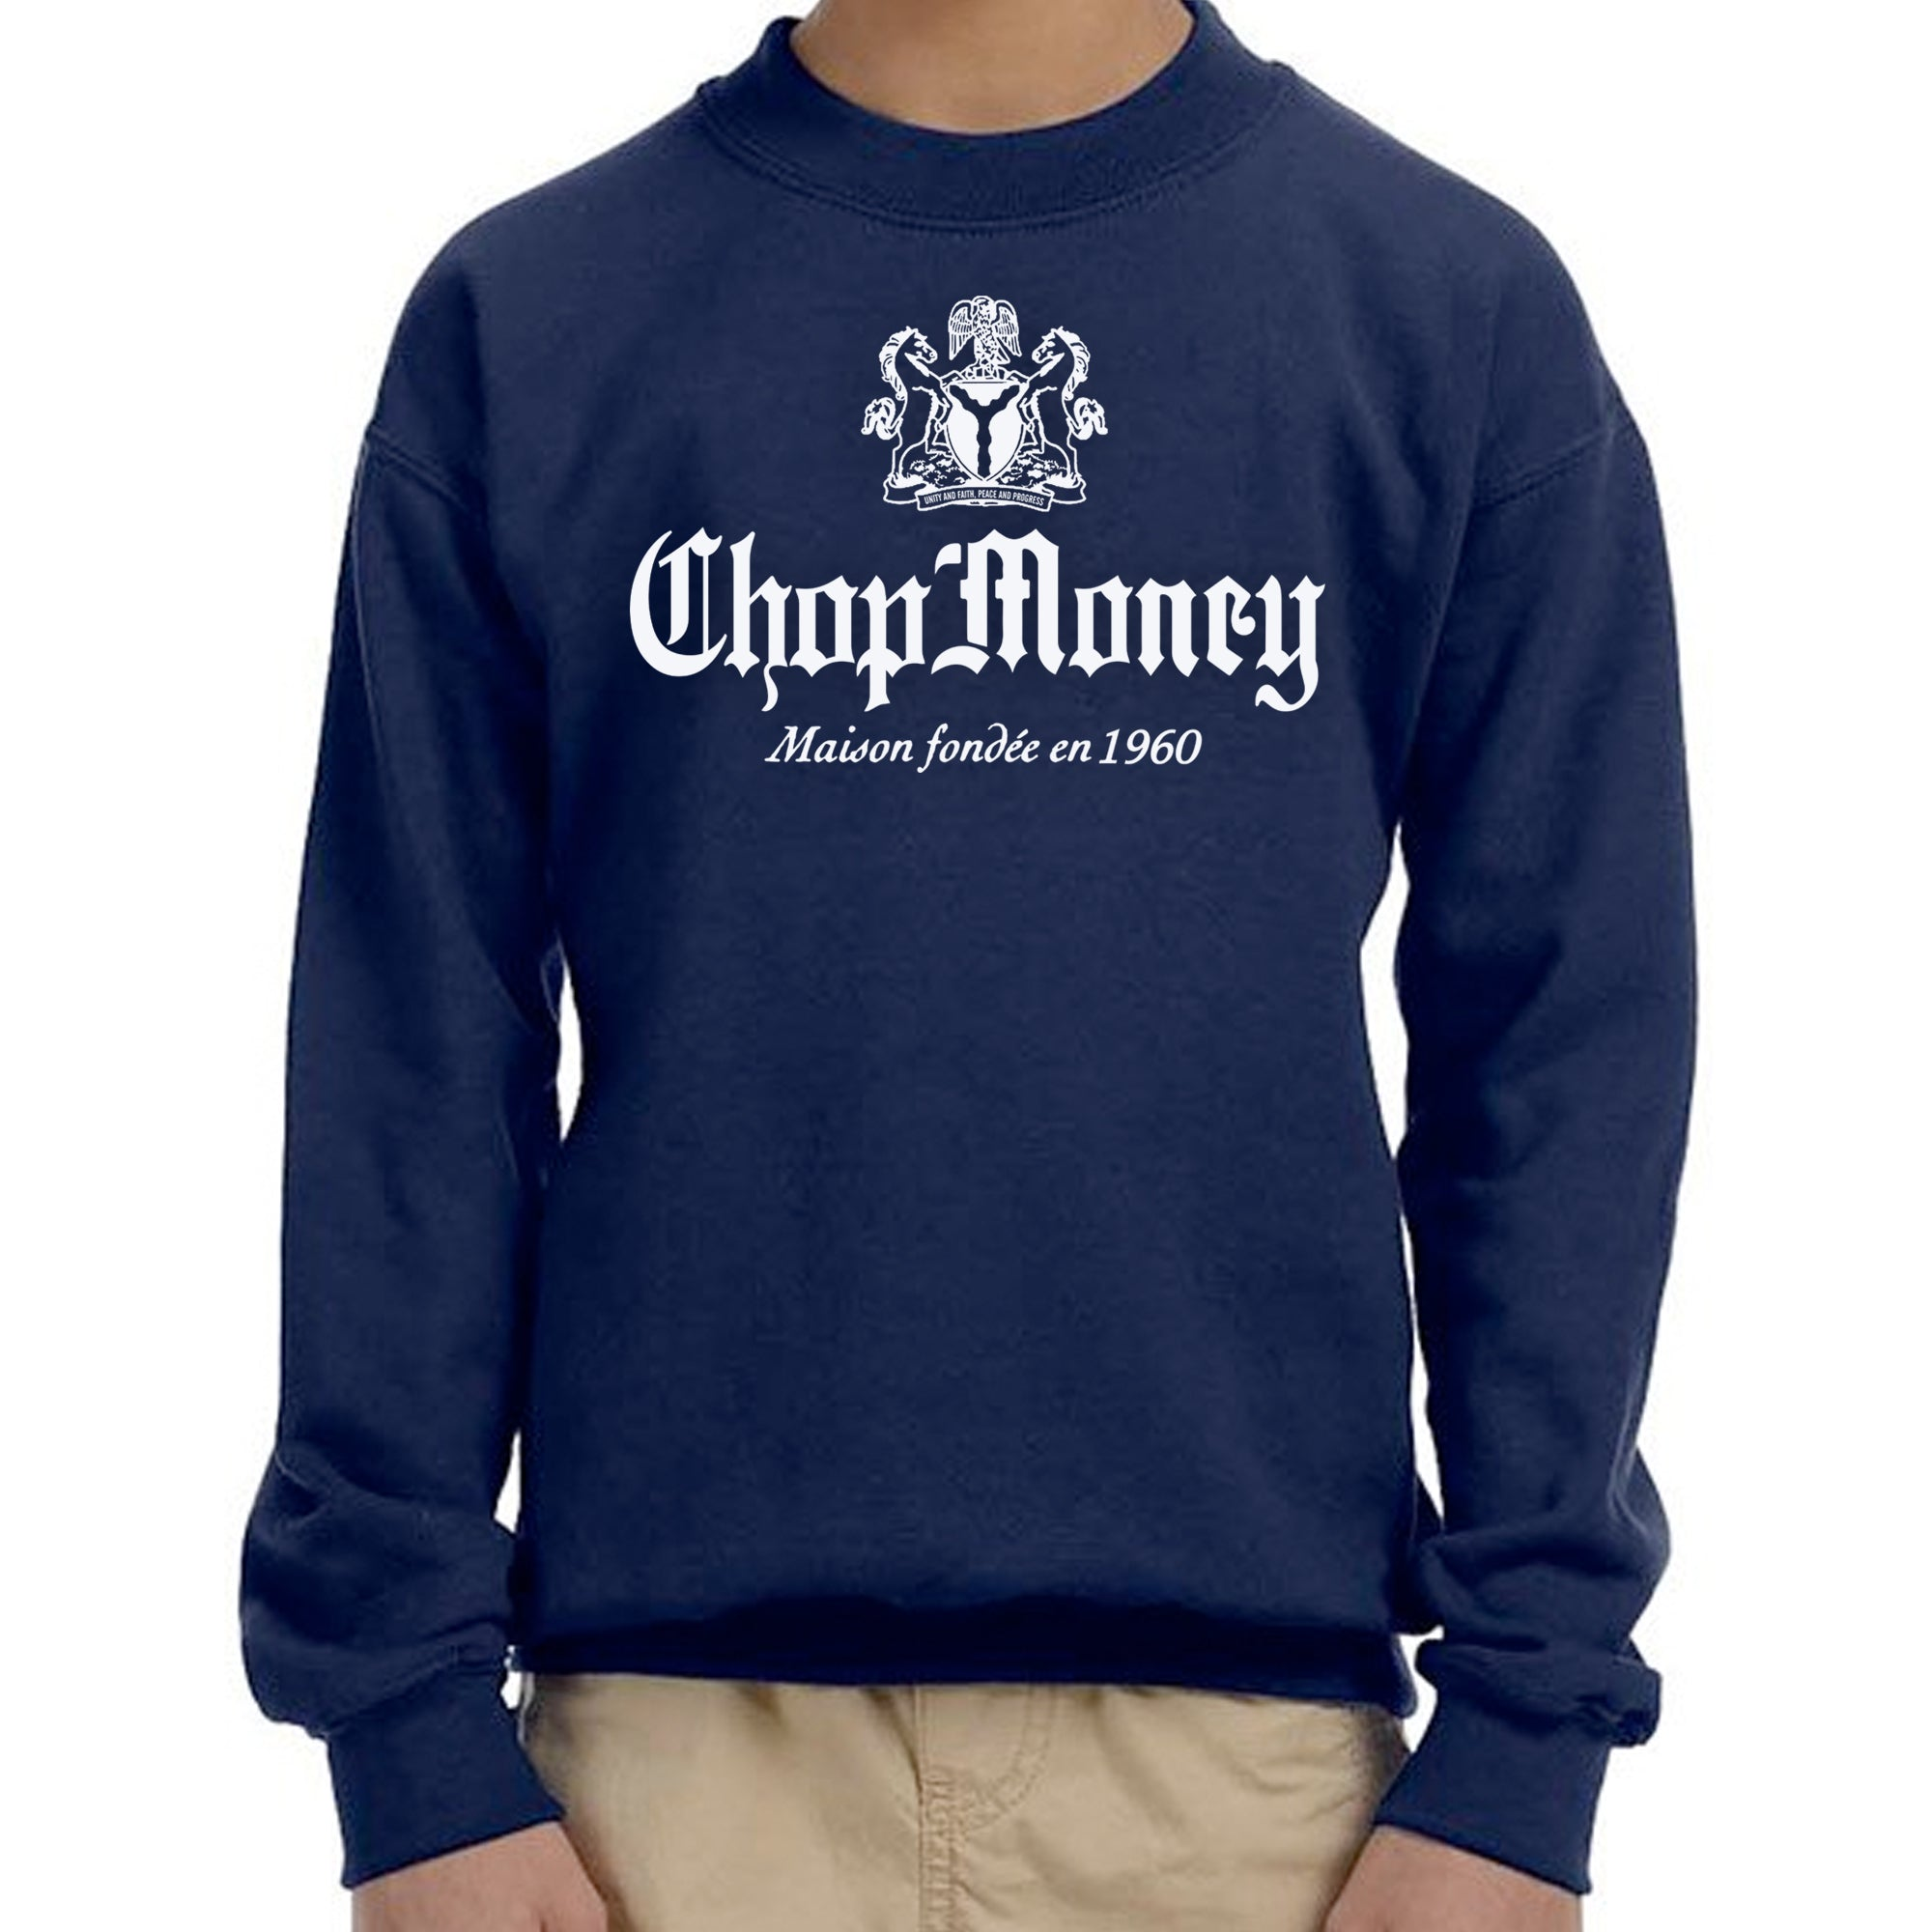 Chop Money Kids Sweatshirt